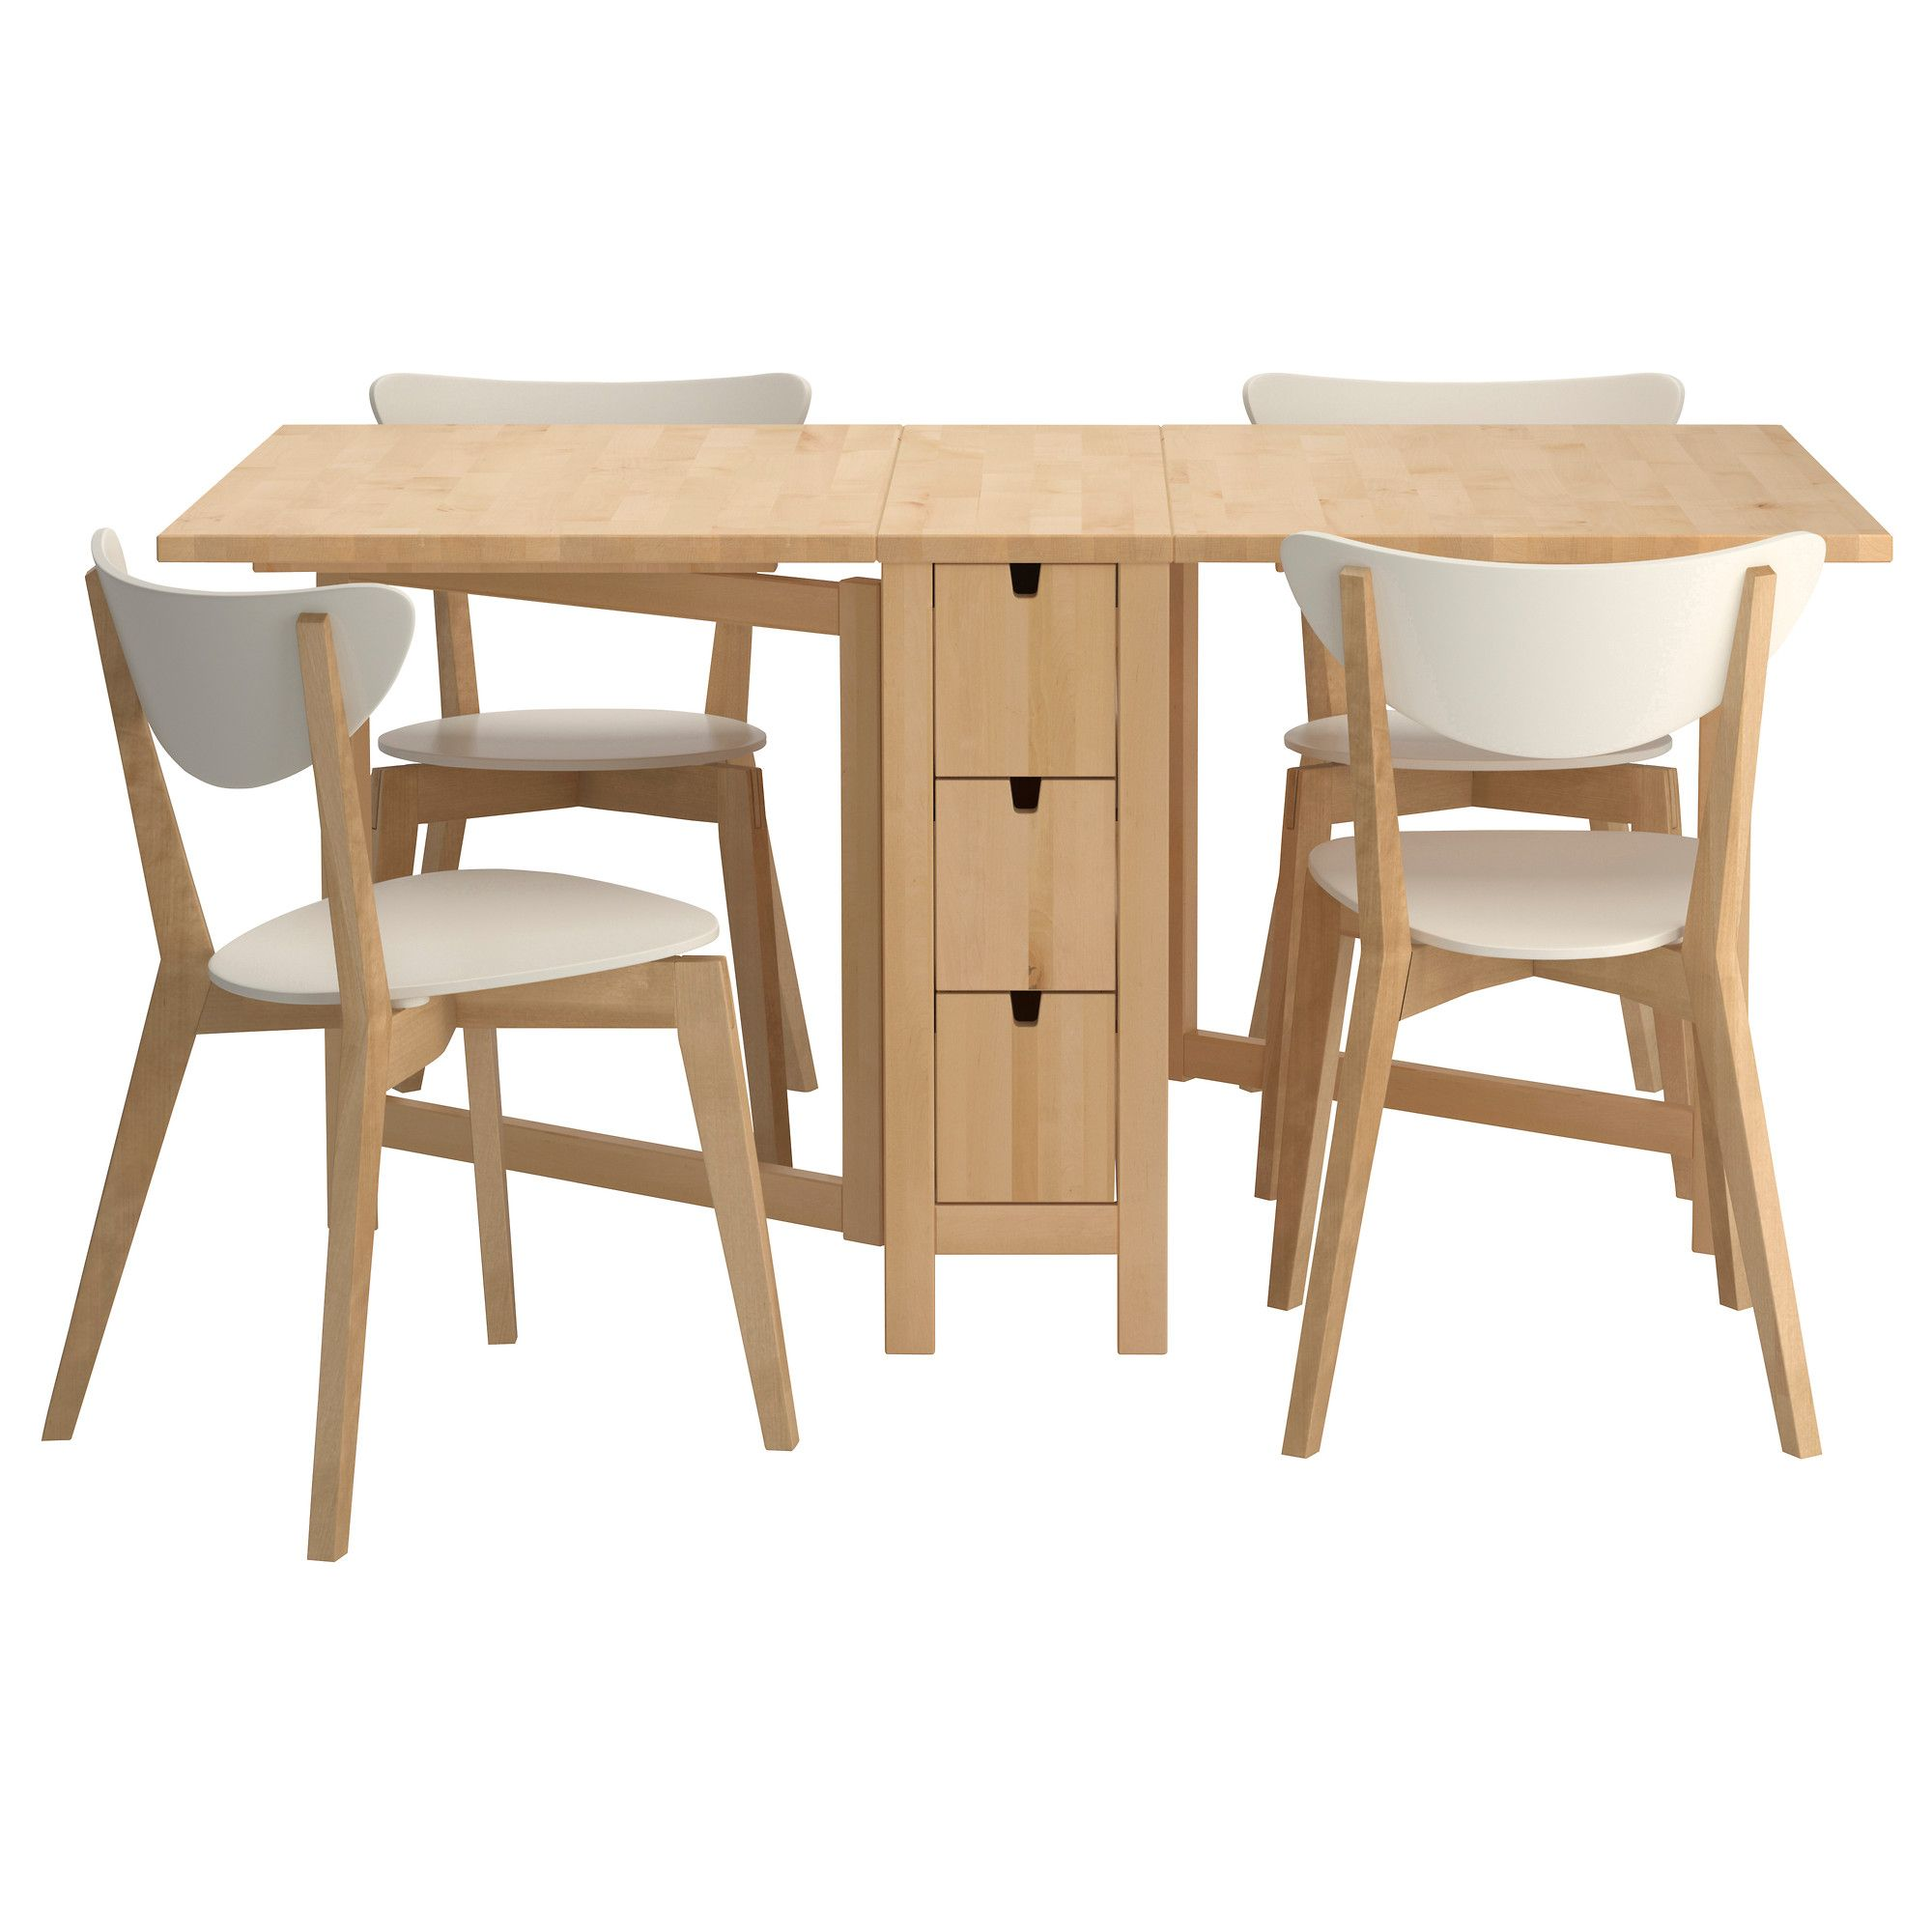 NORDEN/NORDMYRA Table And 4 Chairs - IKEA